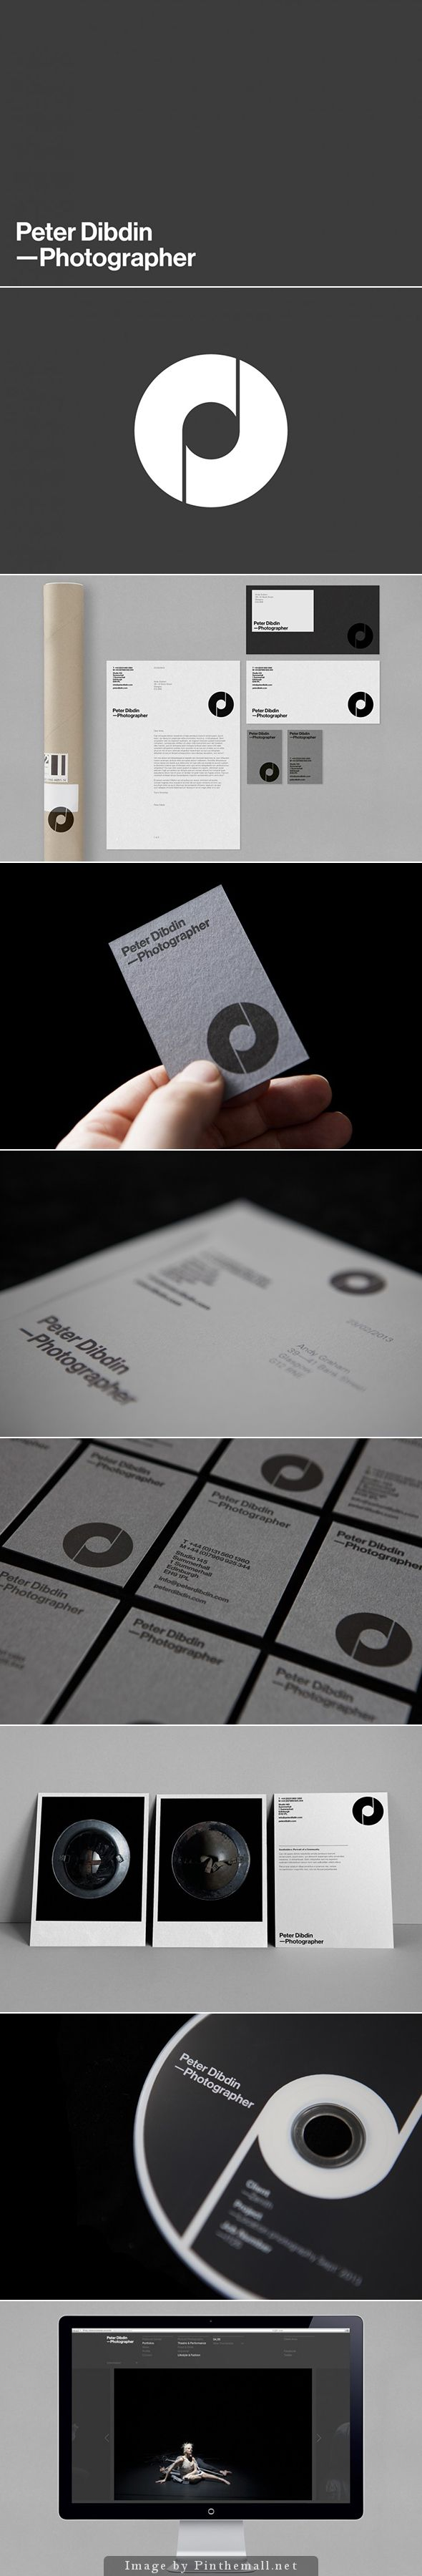 air force outlet uk Peter Dibdin personal branding  Design by ostreet   created via http   pinthemall net